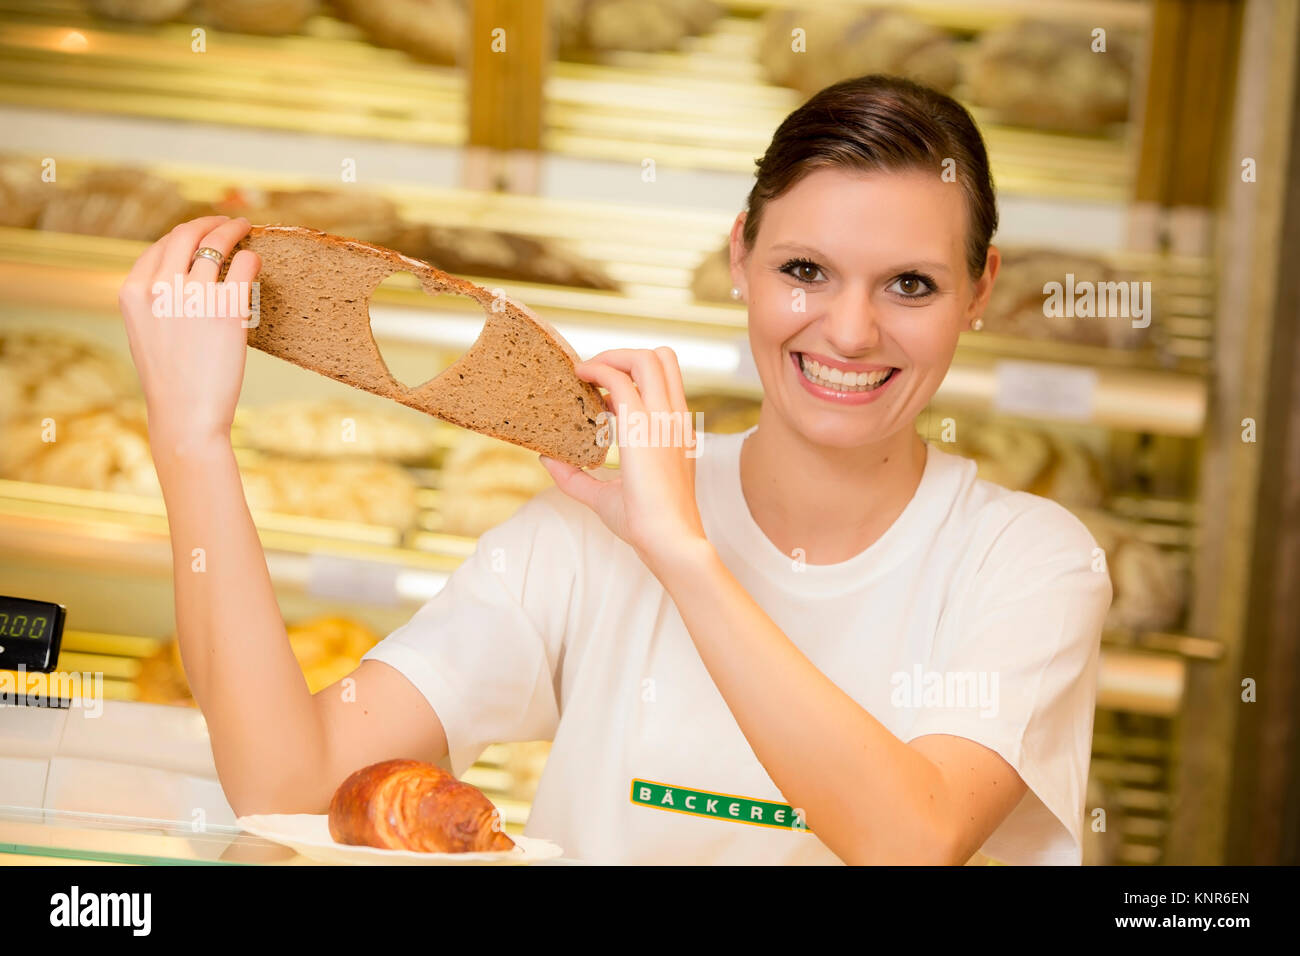 Angestellte in der Baeckerei - clerk in a bakery Stock Photo